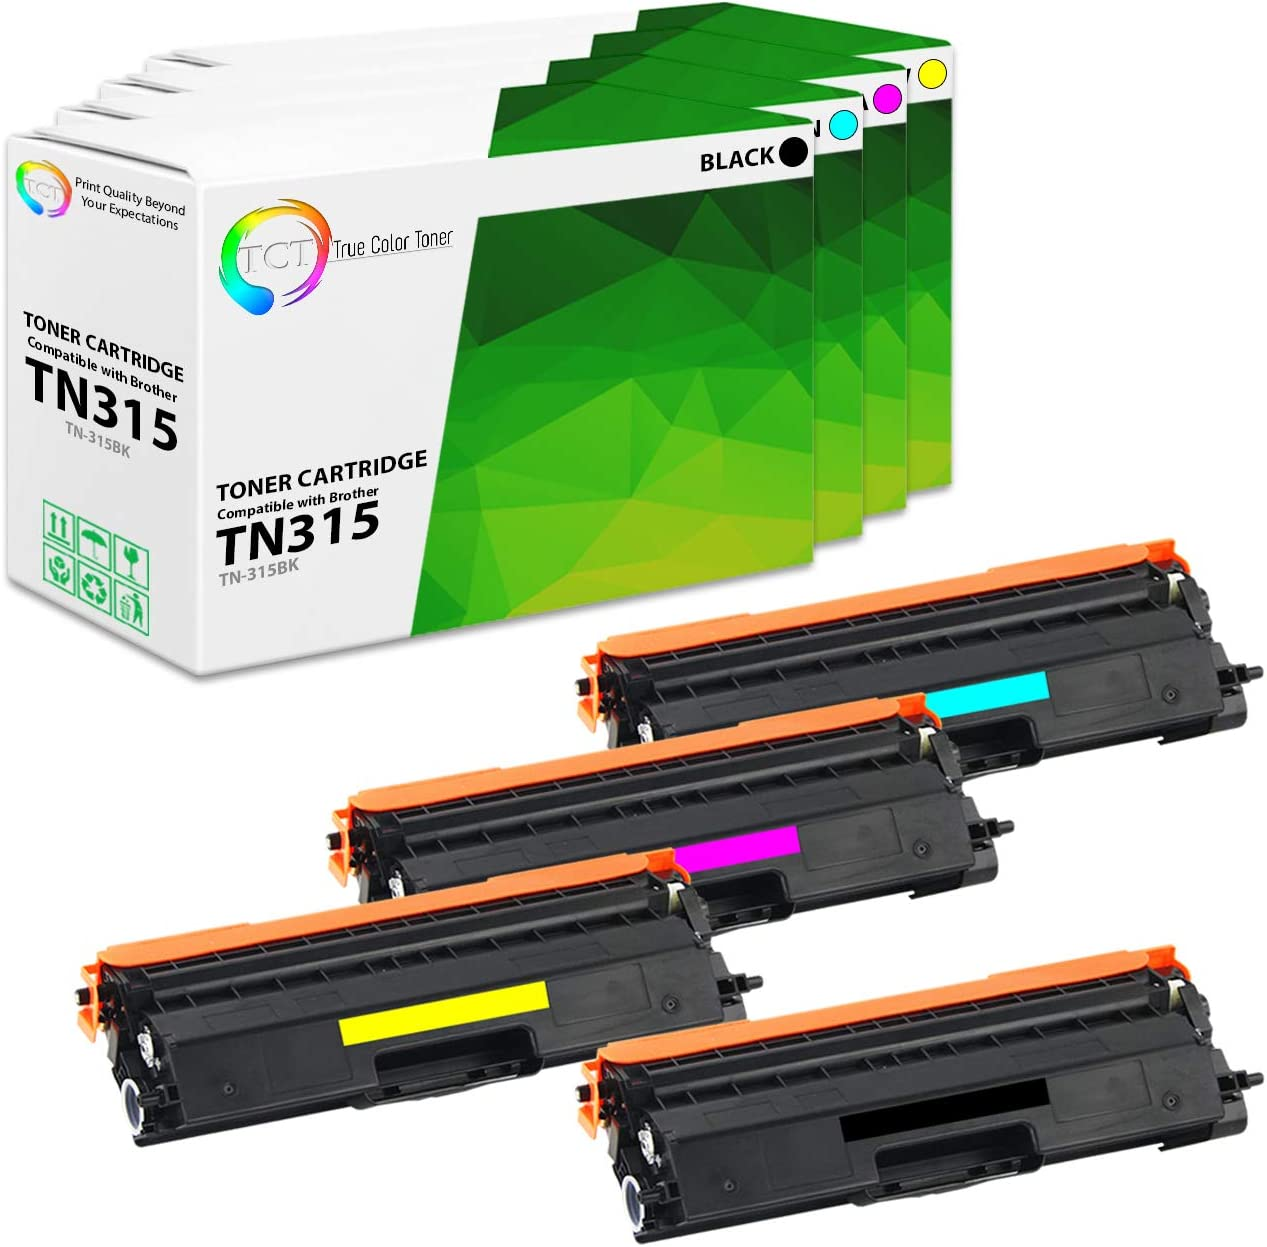 4PK TN-315 Black and Color Toner Cartridge for